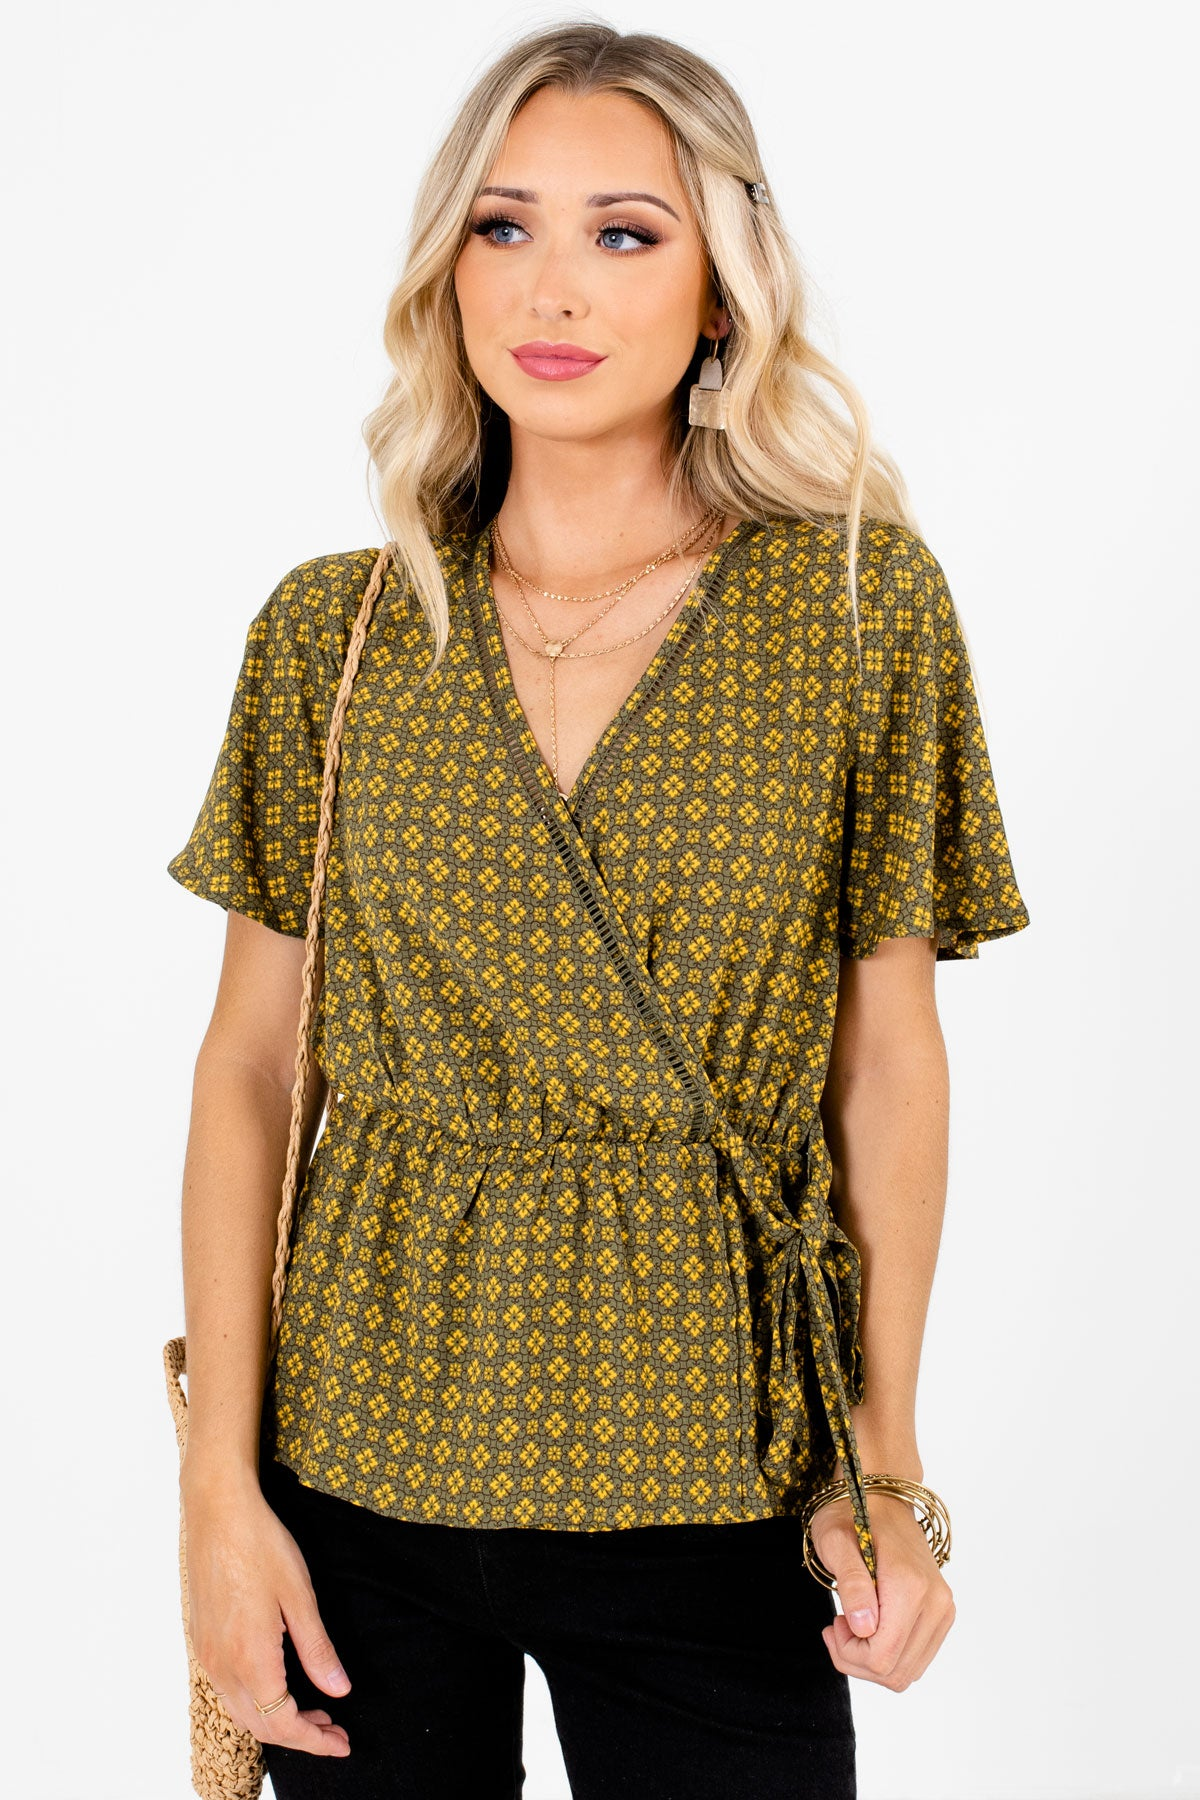 Olive Green Multicolored Patterned Boutique Blouses for Women